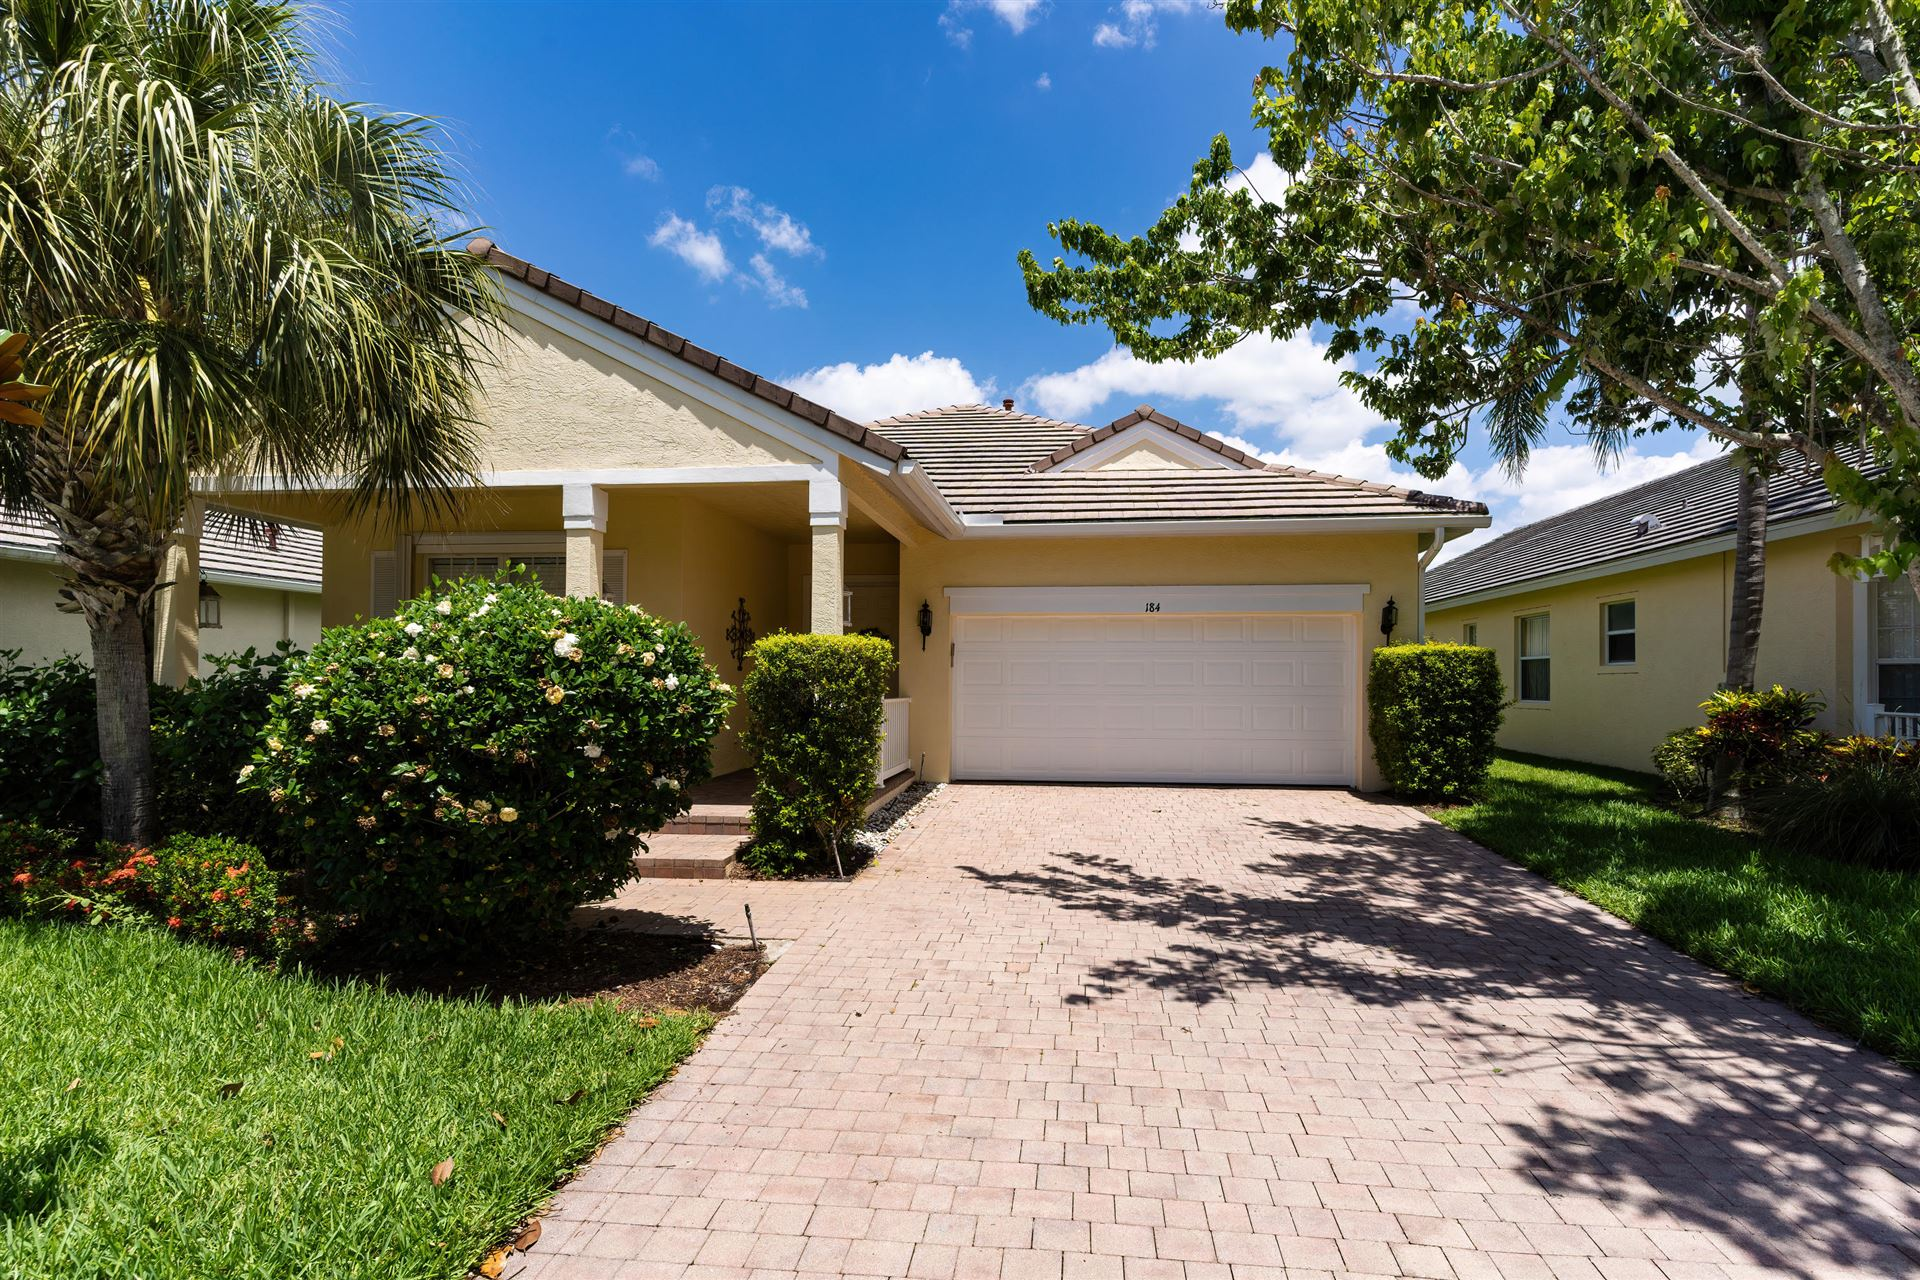 184 NW Willow Grove Avenue, Port Saint Lucie, FL 34986 - MLS#: RX-10713348